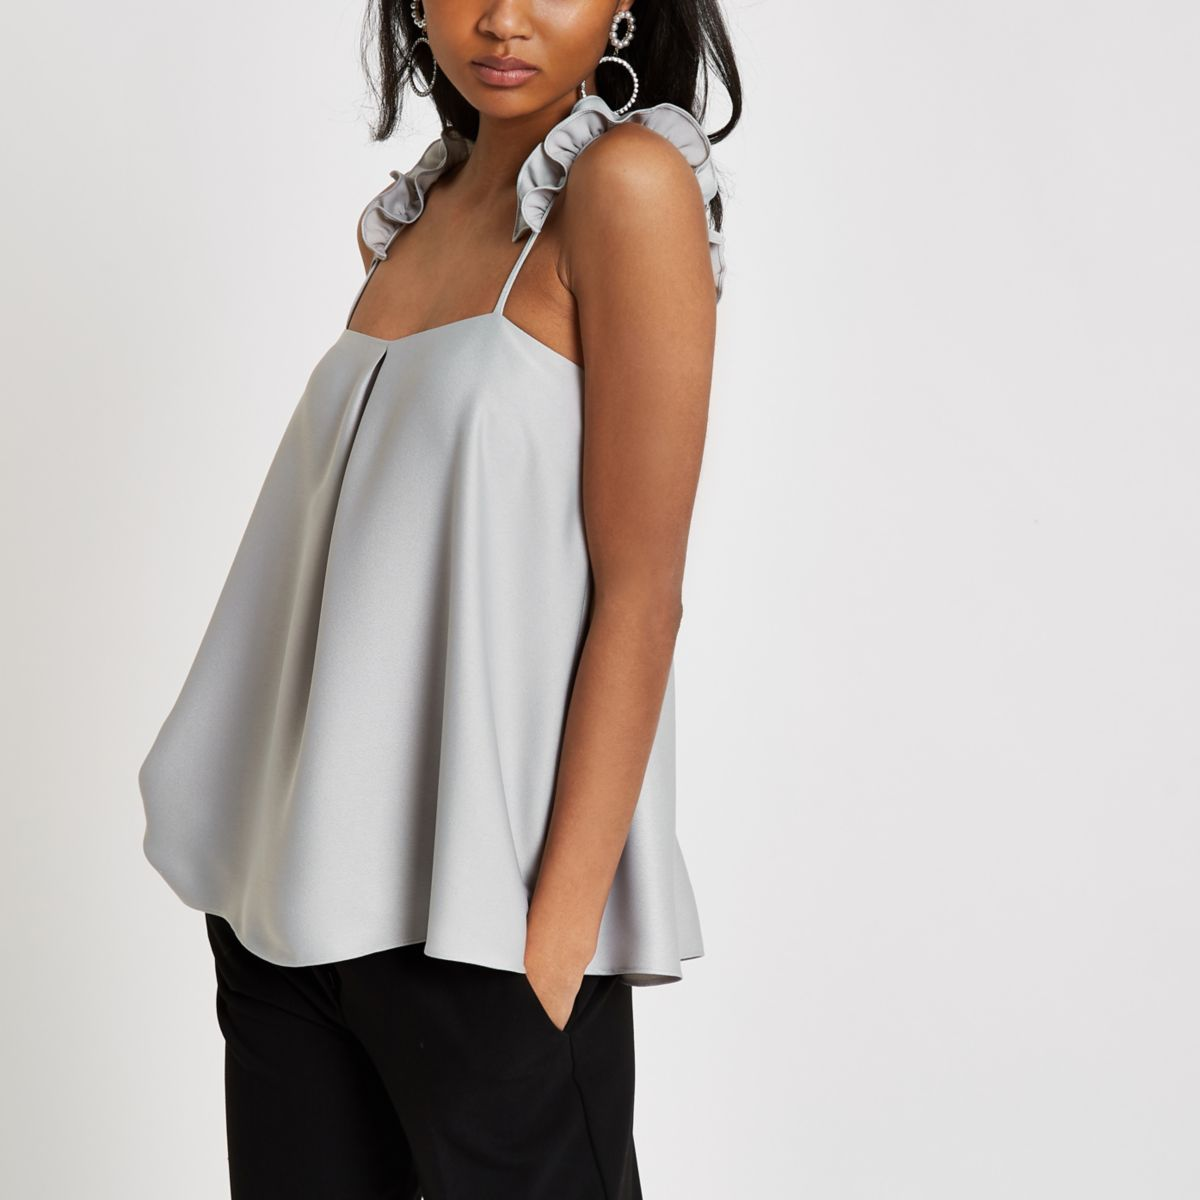 Shop Lulus for a big selection of blouses and dressy tops perfect for special occasions. Super low prices and FREE SHIPPING on orders over $